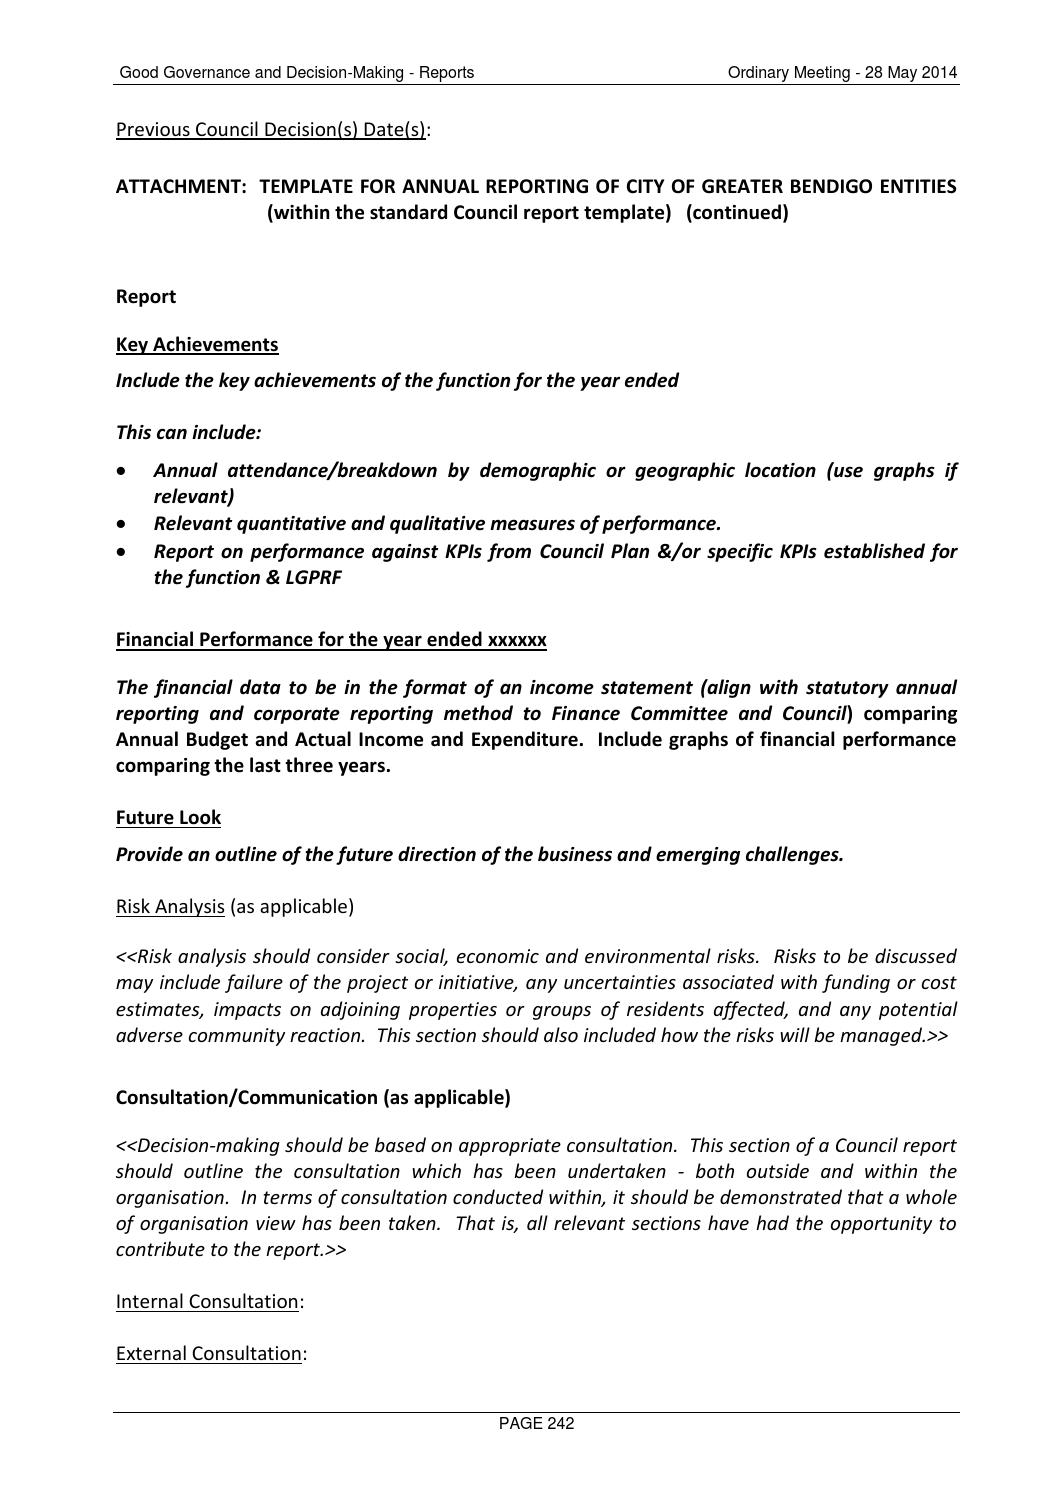 20140528 council minutes 28 may 2014 by City of Greater Bendigo - issuu